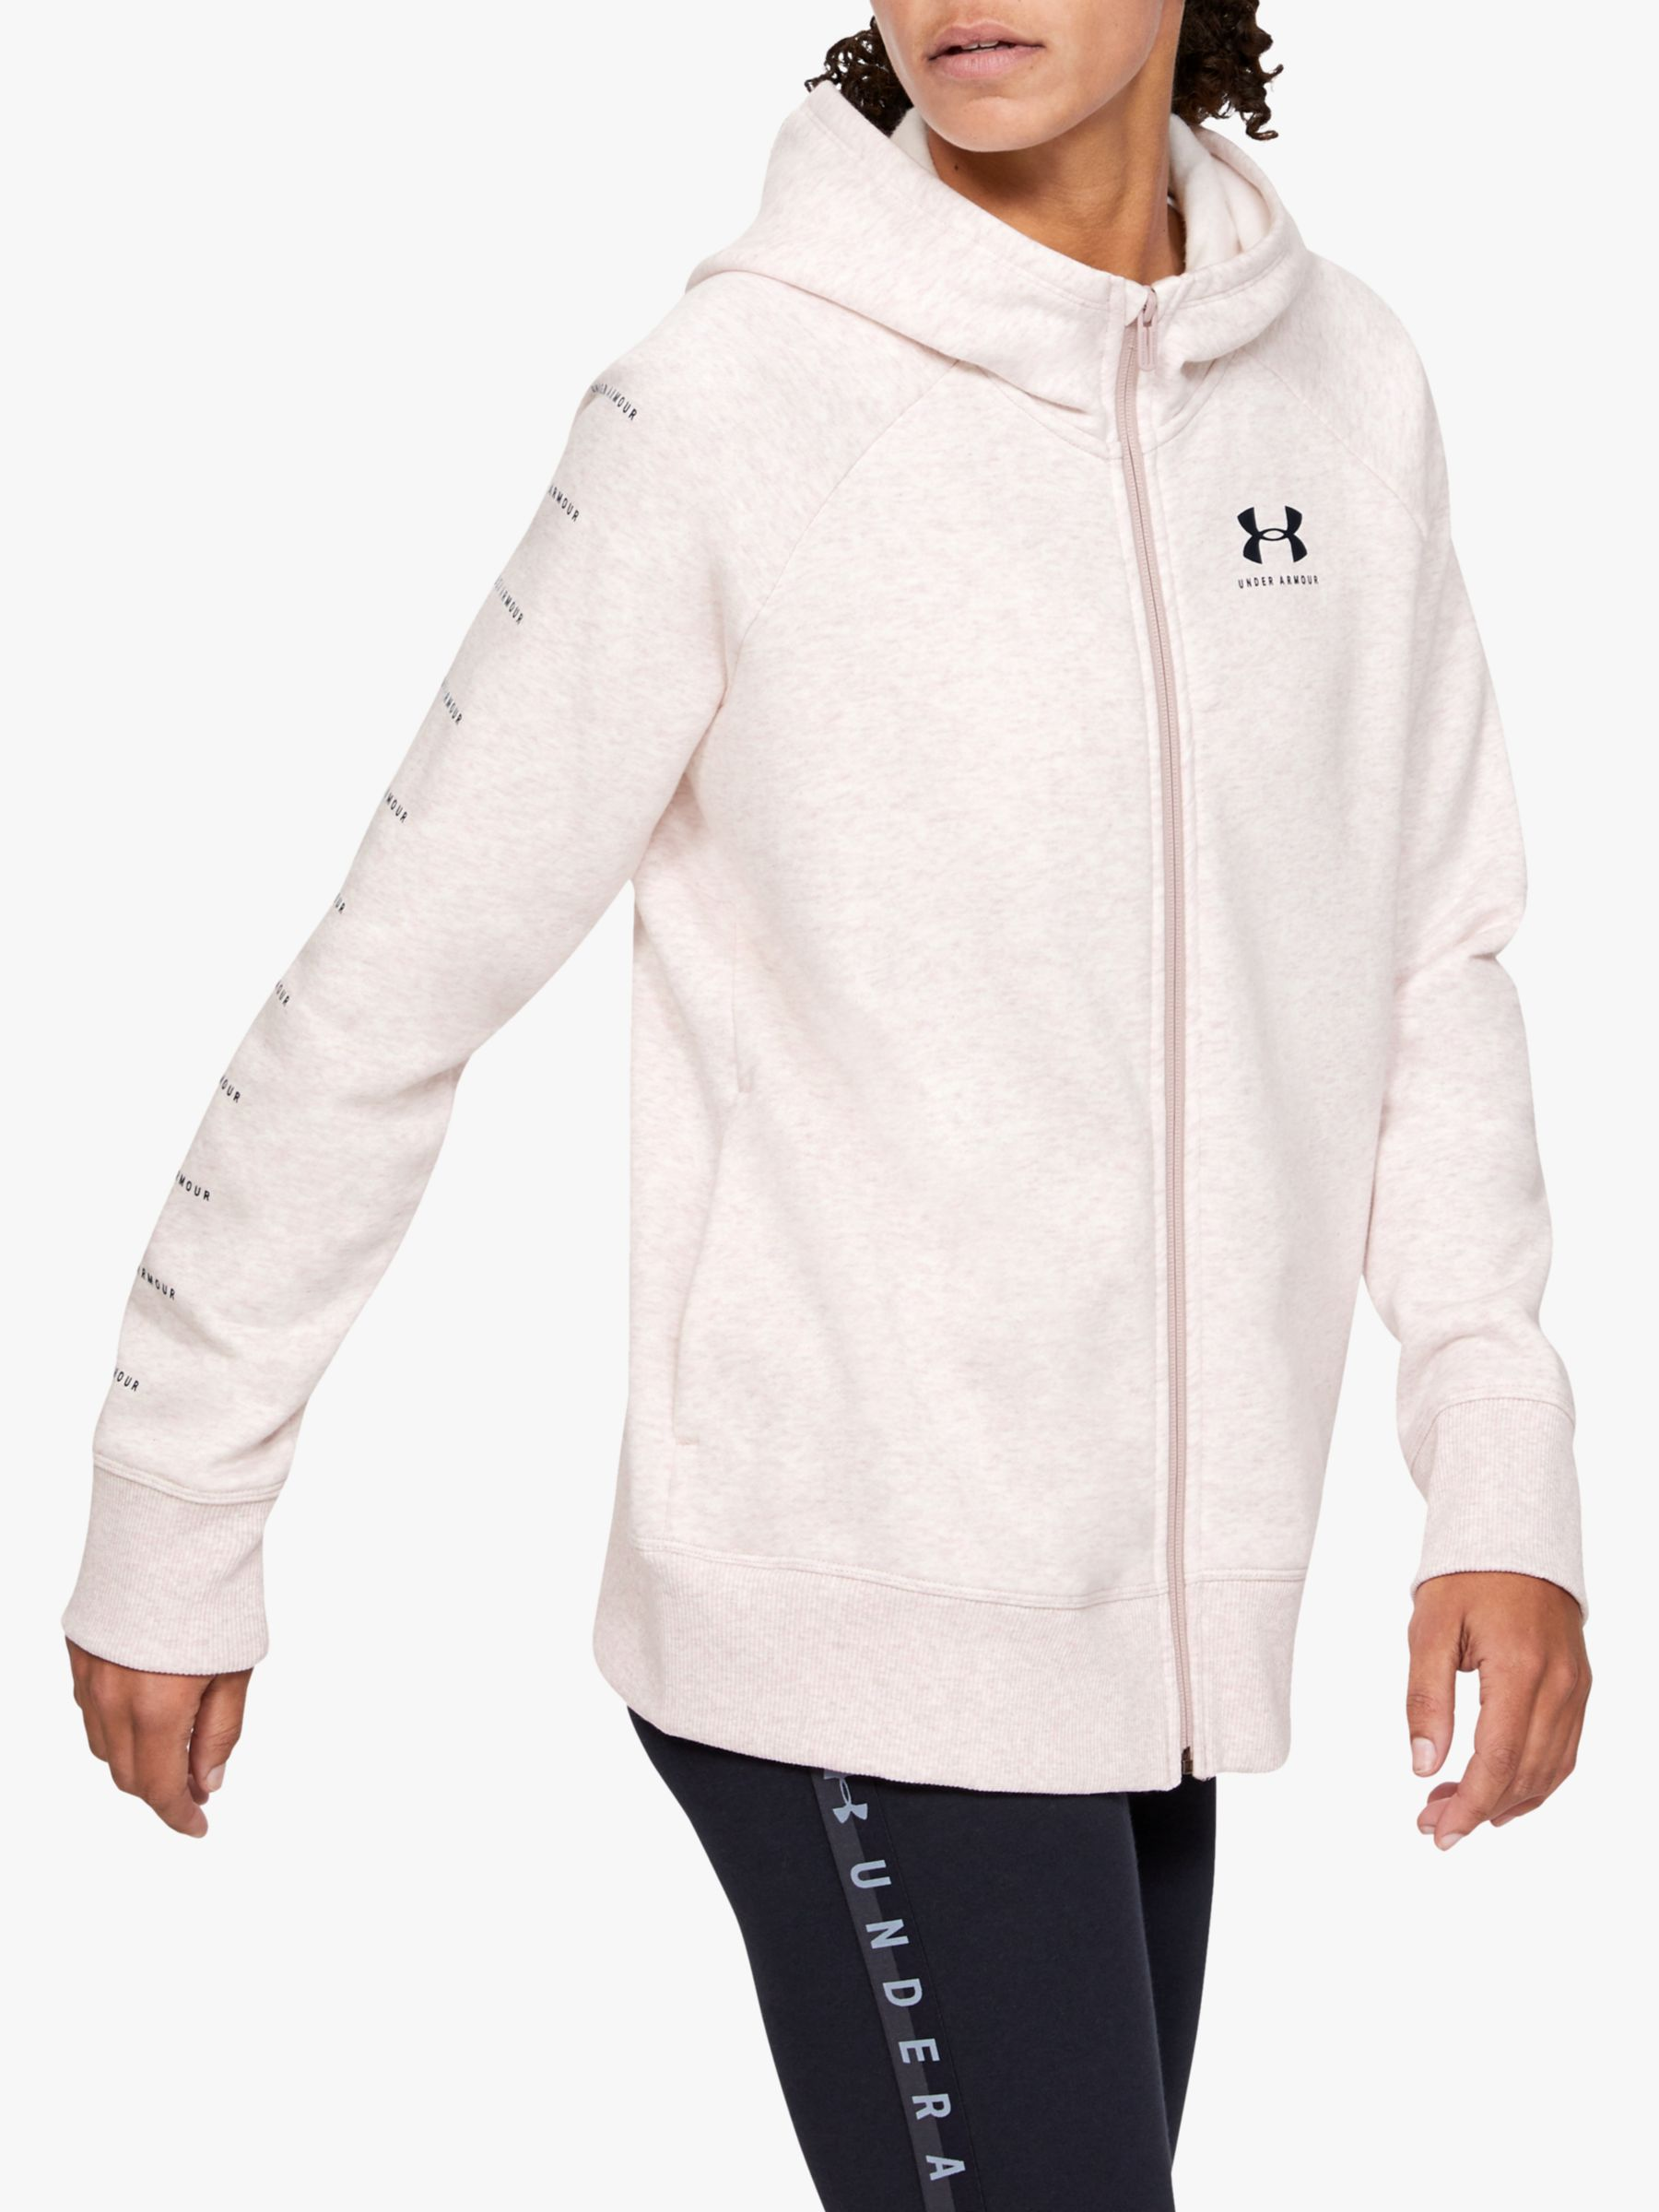 Under Armour Womens Rival Fleece Sportstyle Lc Sleeve Graphic Full Zip